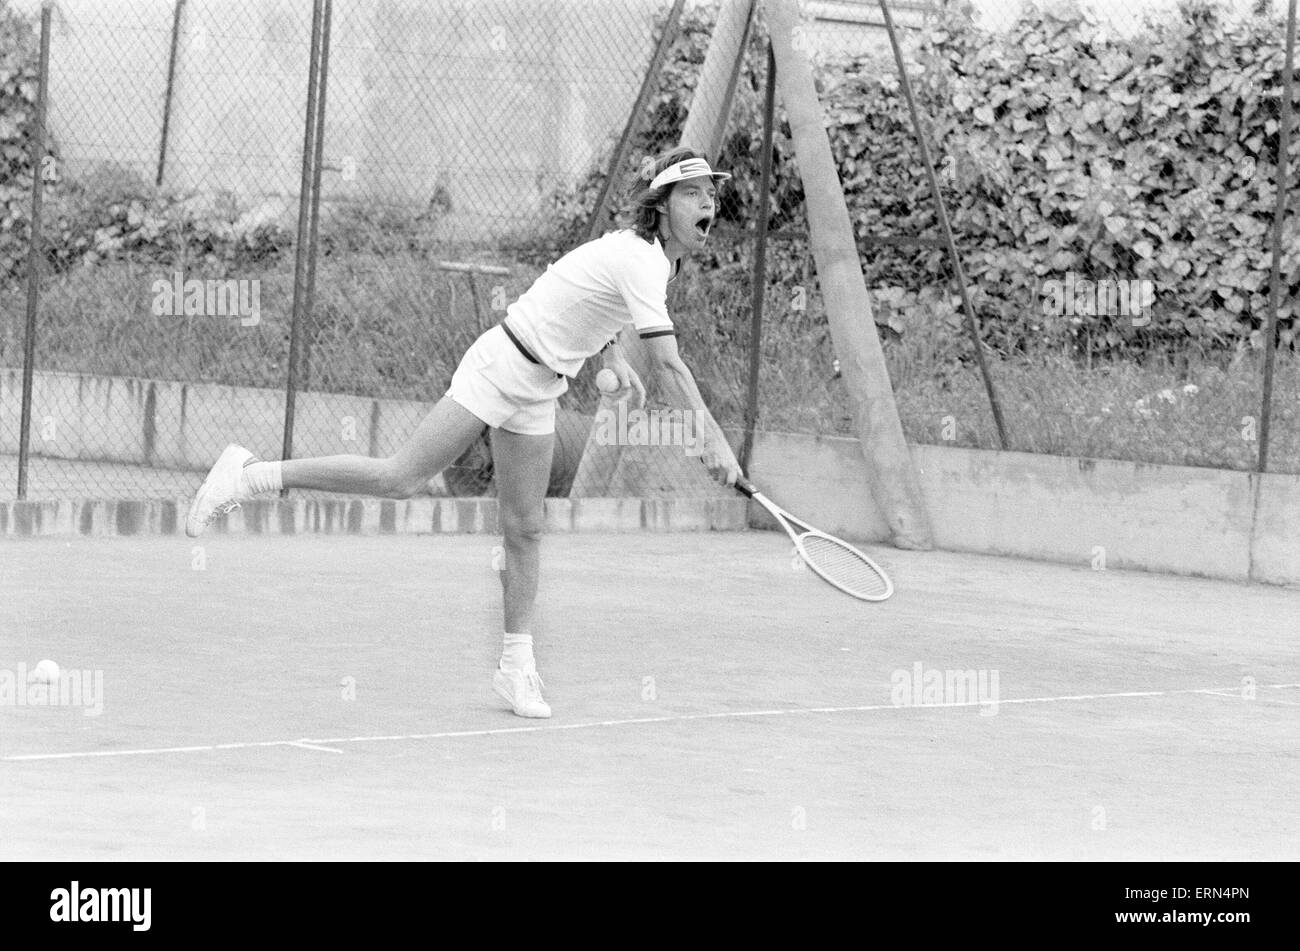 Mick Jagger and Ron Wood, takes time out to relax in the South of France, by playing tennis, before the start of Stock Photo